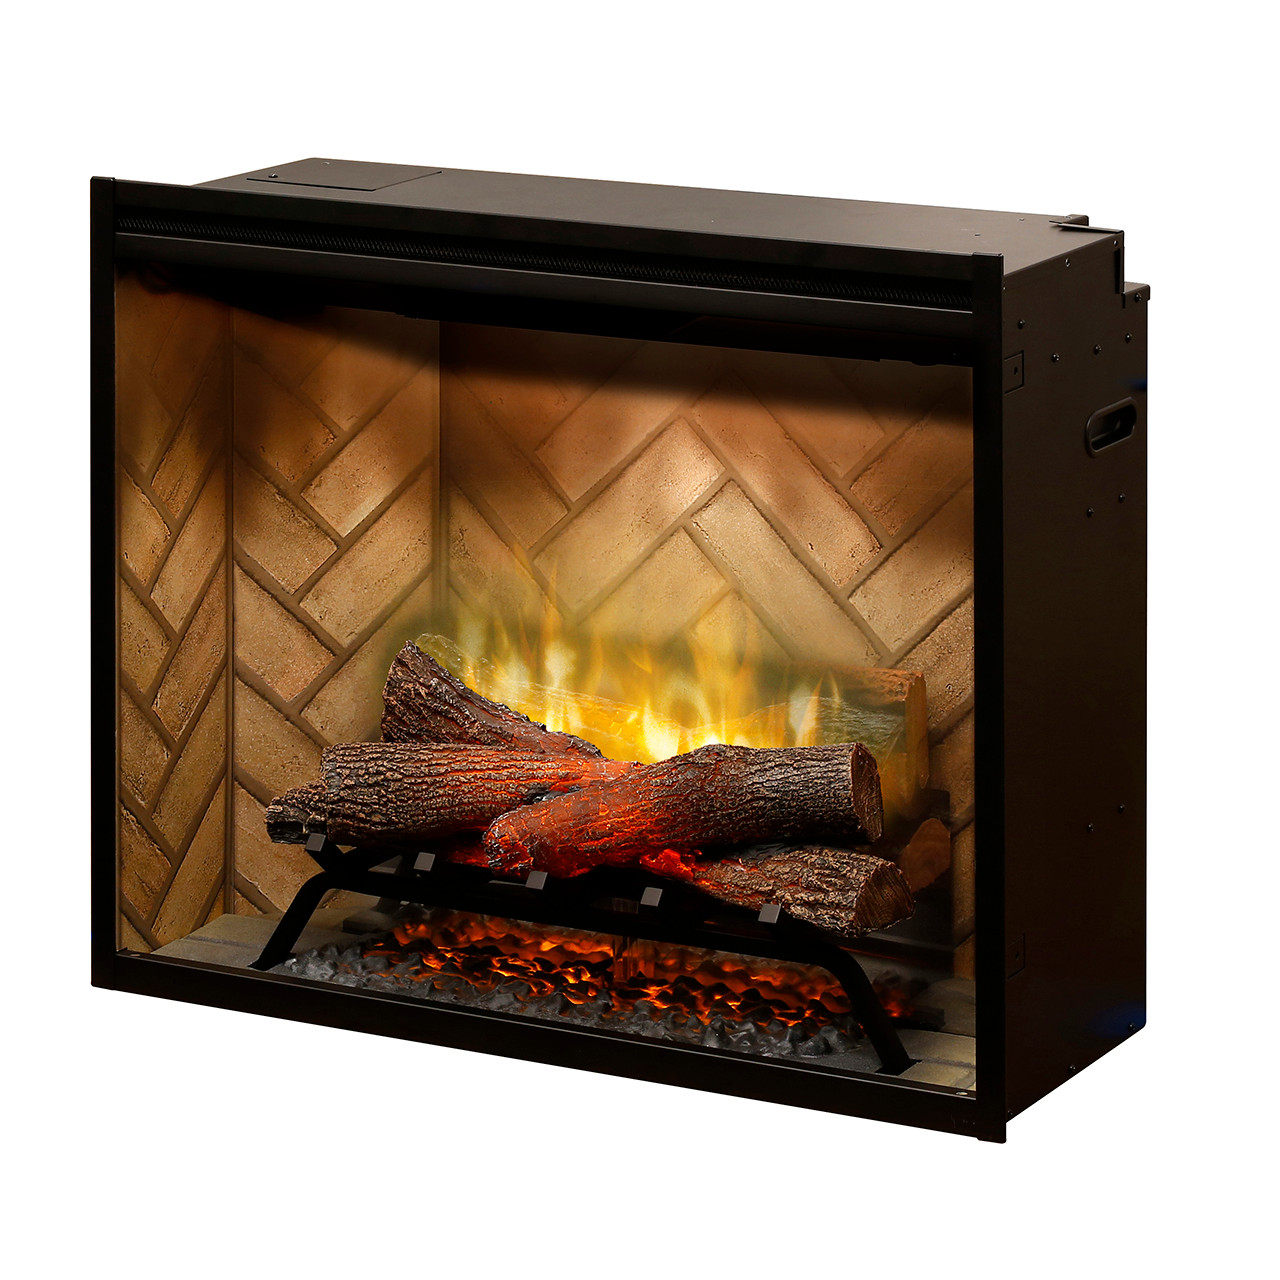 rbf30 revillusion built in electric firebox